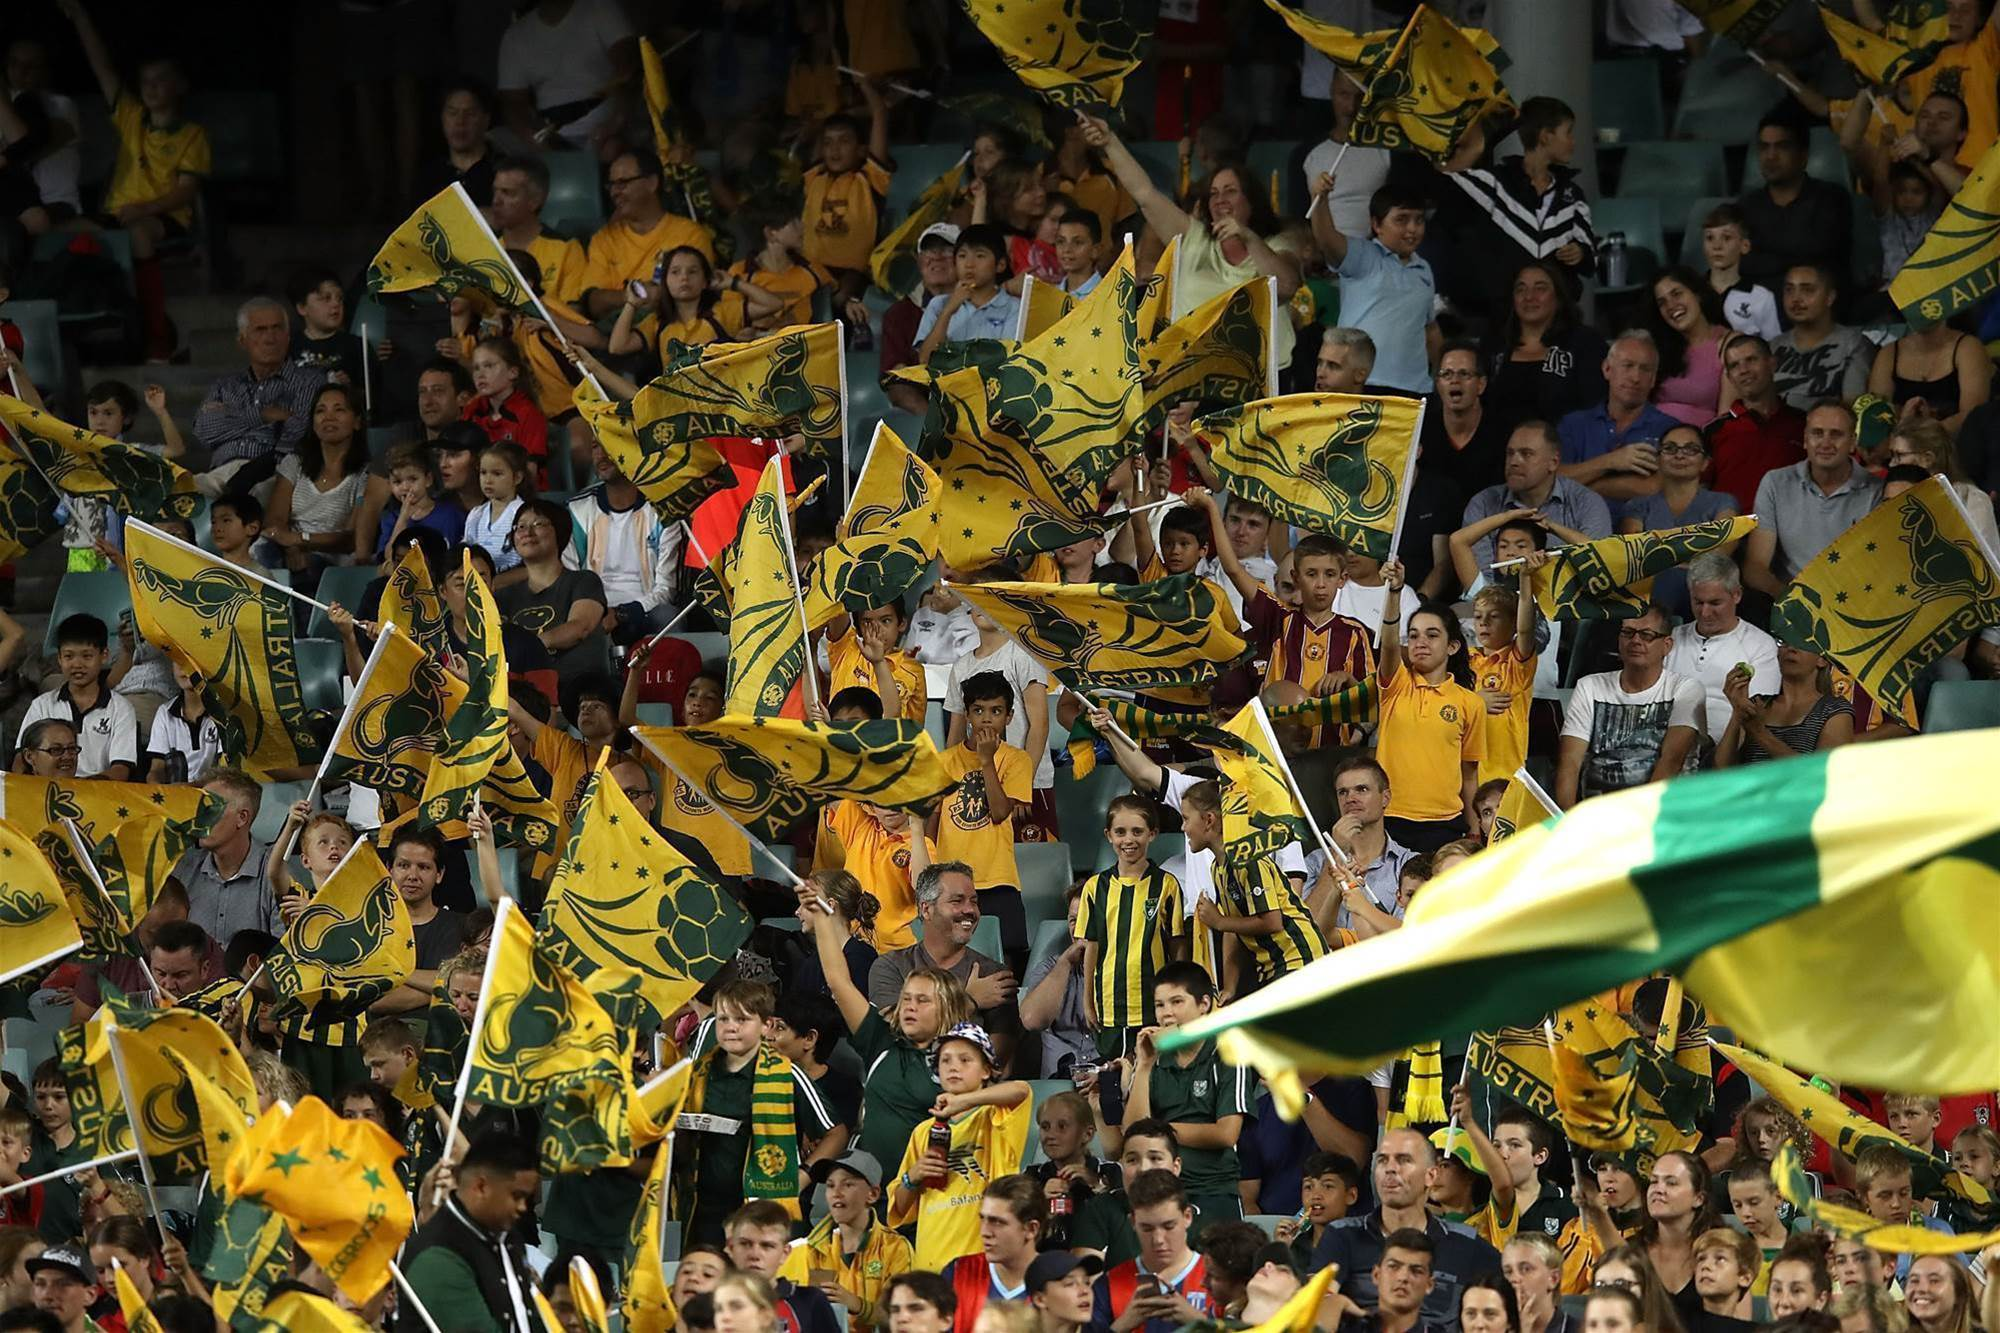 Gallery: Socceroos fans vs UAE